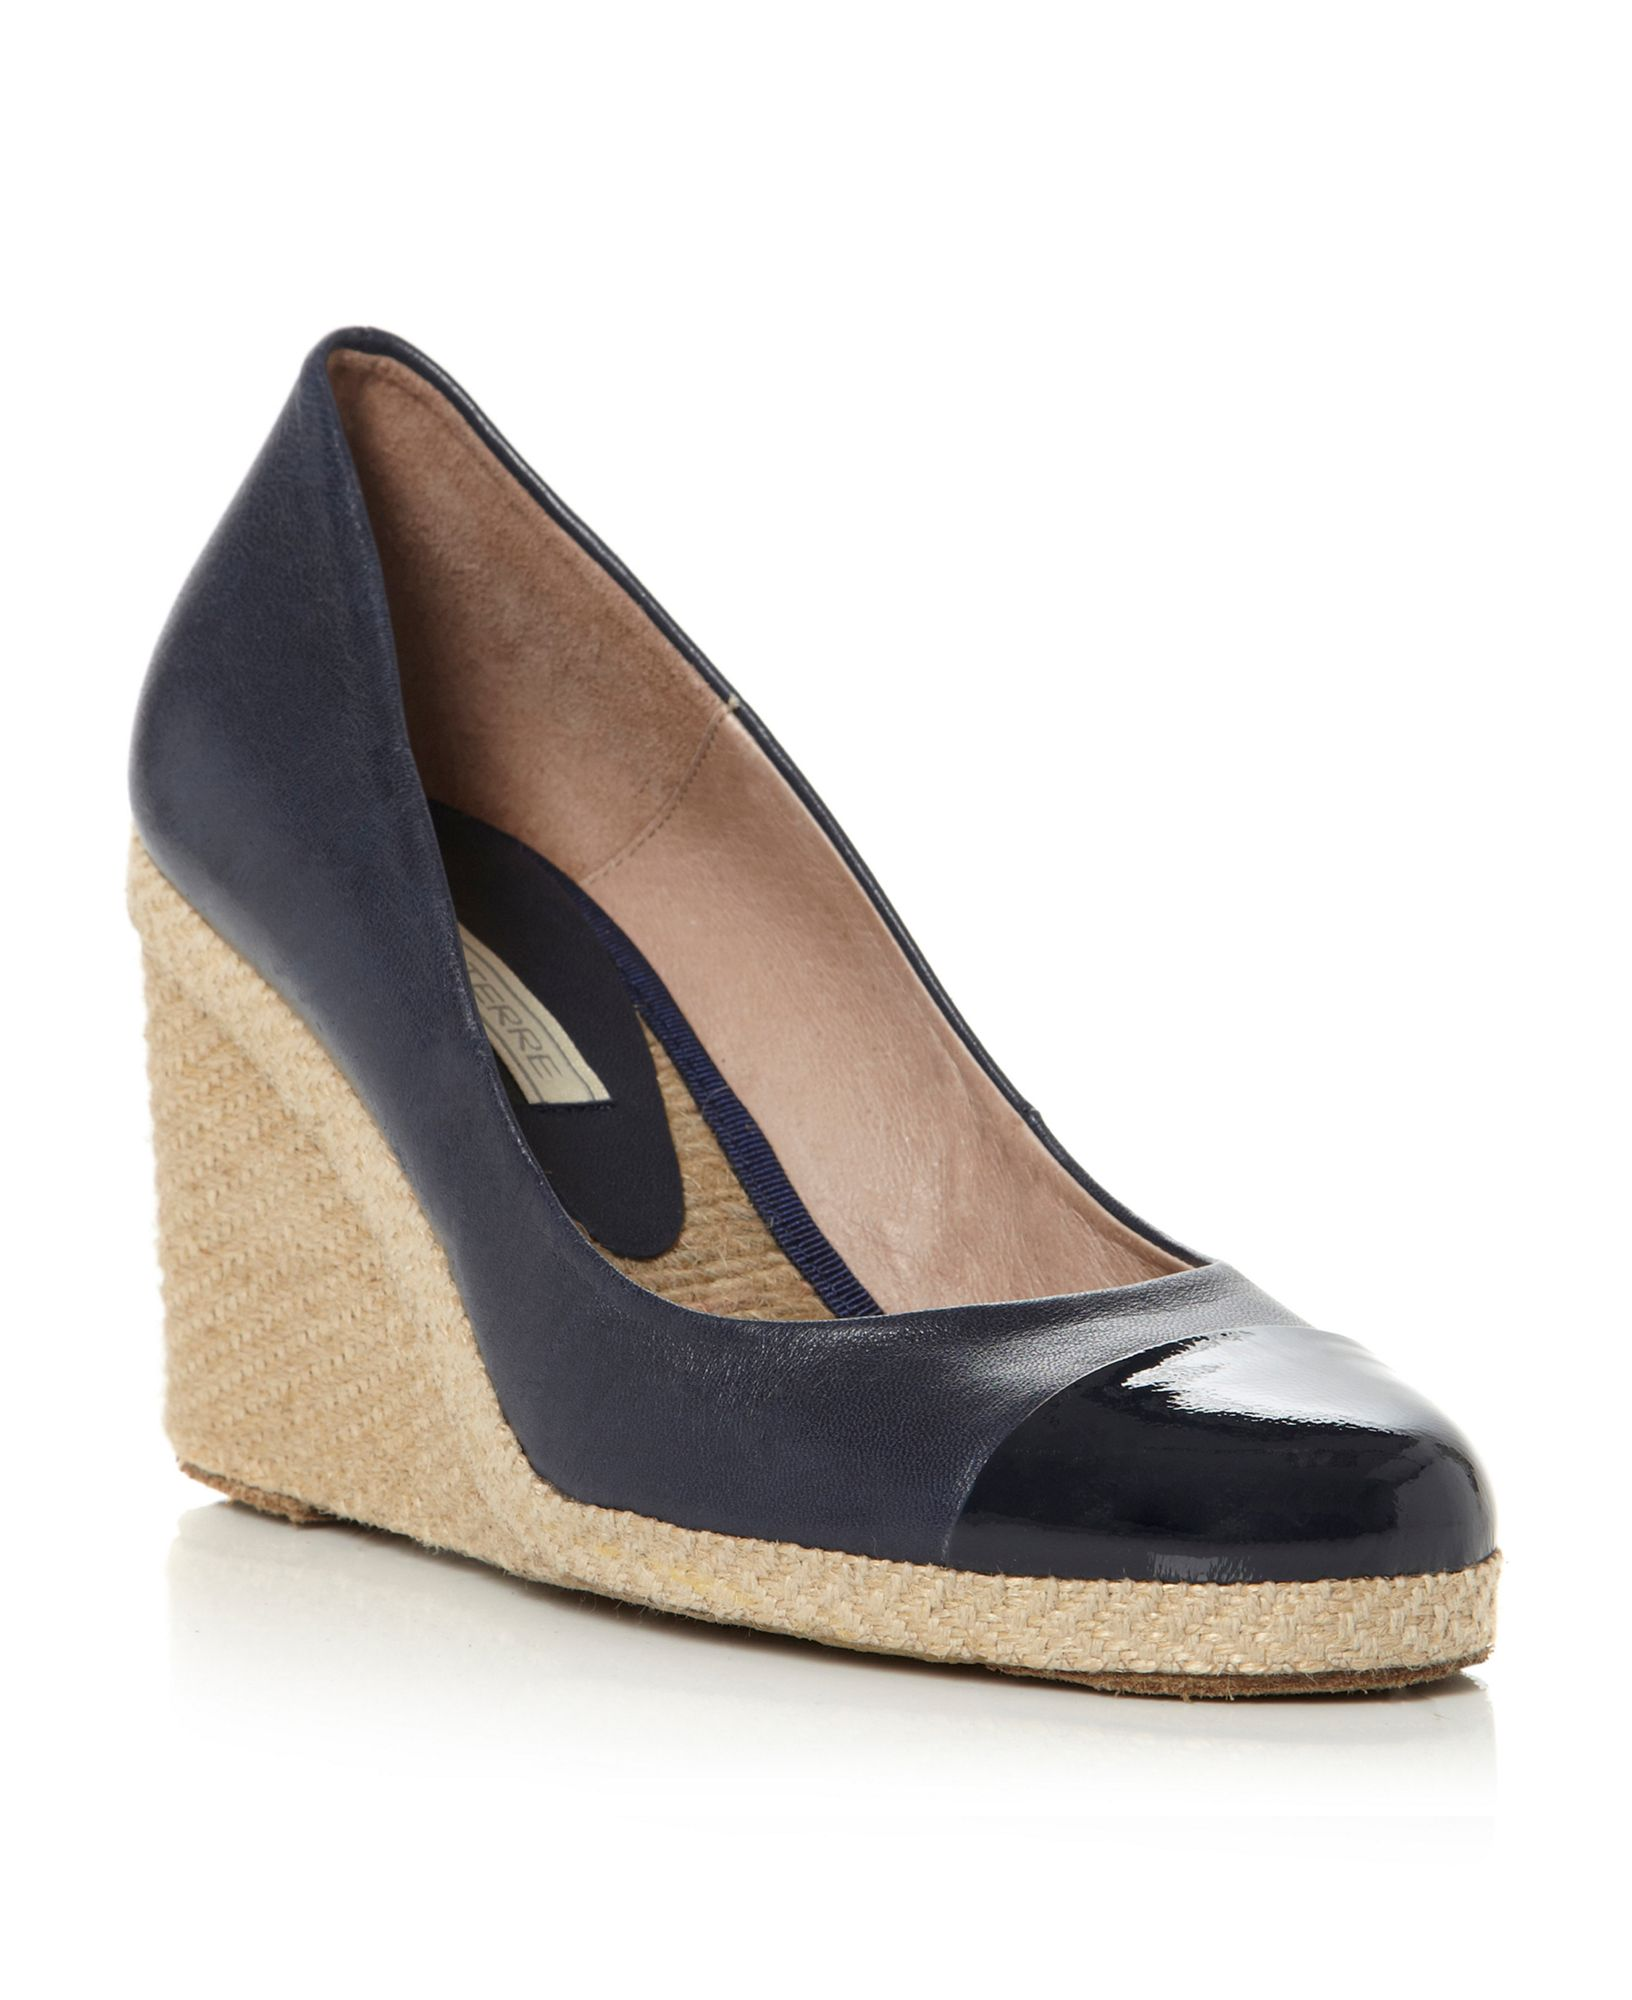 Pied A Terre Agape Toe Cap Espadrille Wedge Shoes In Black